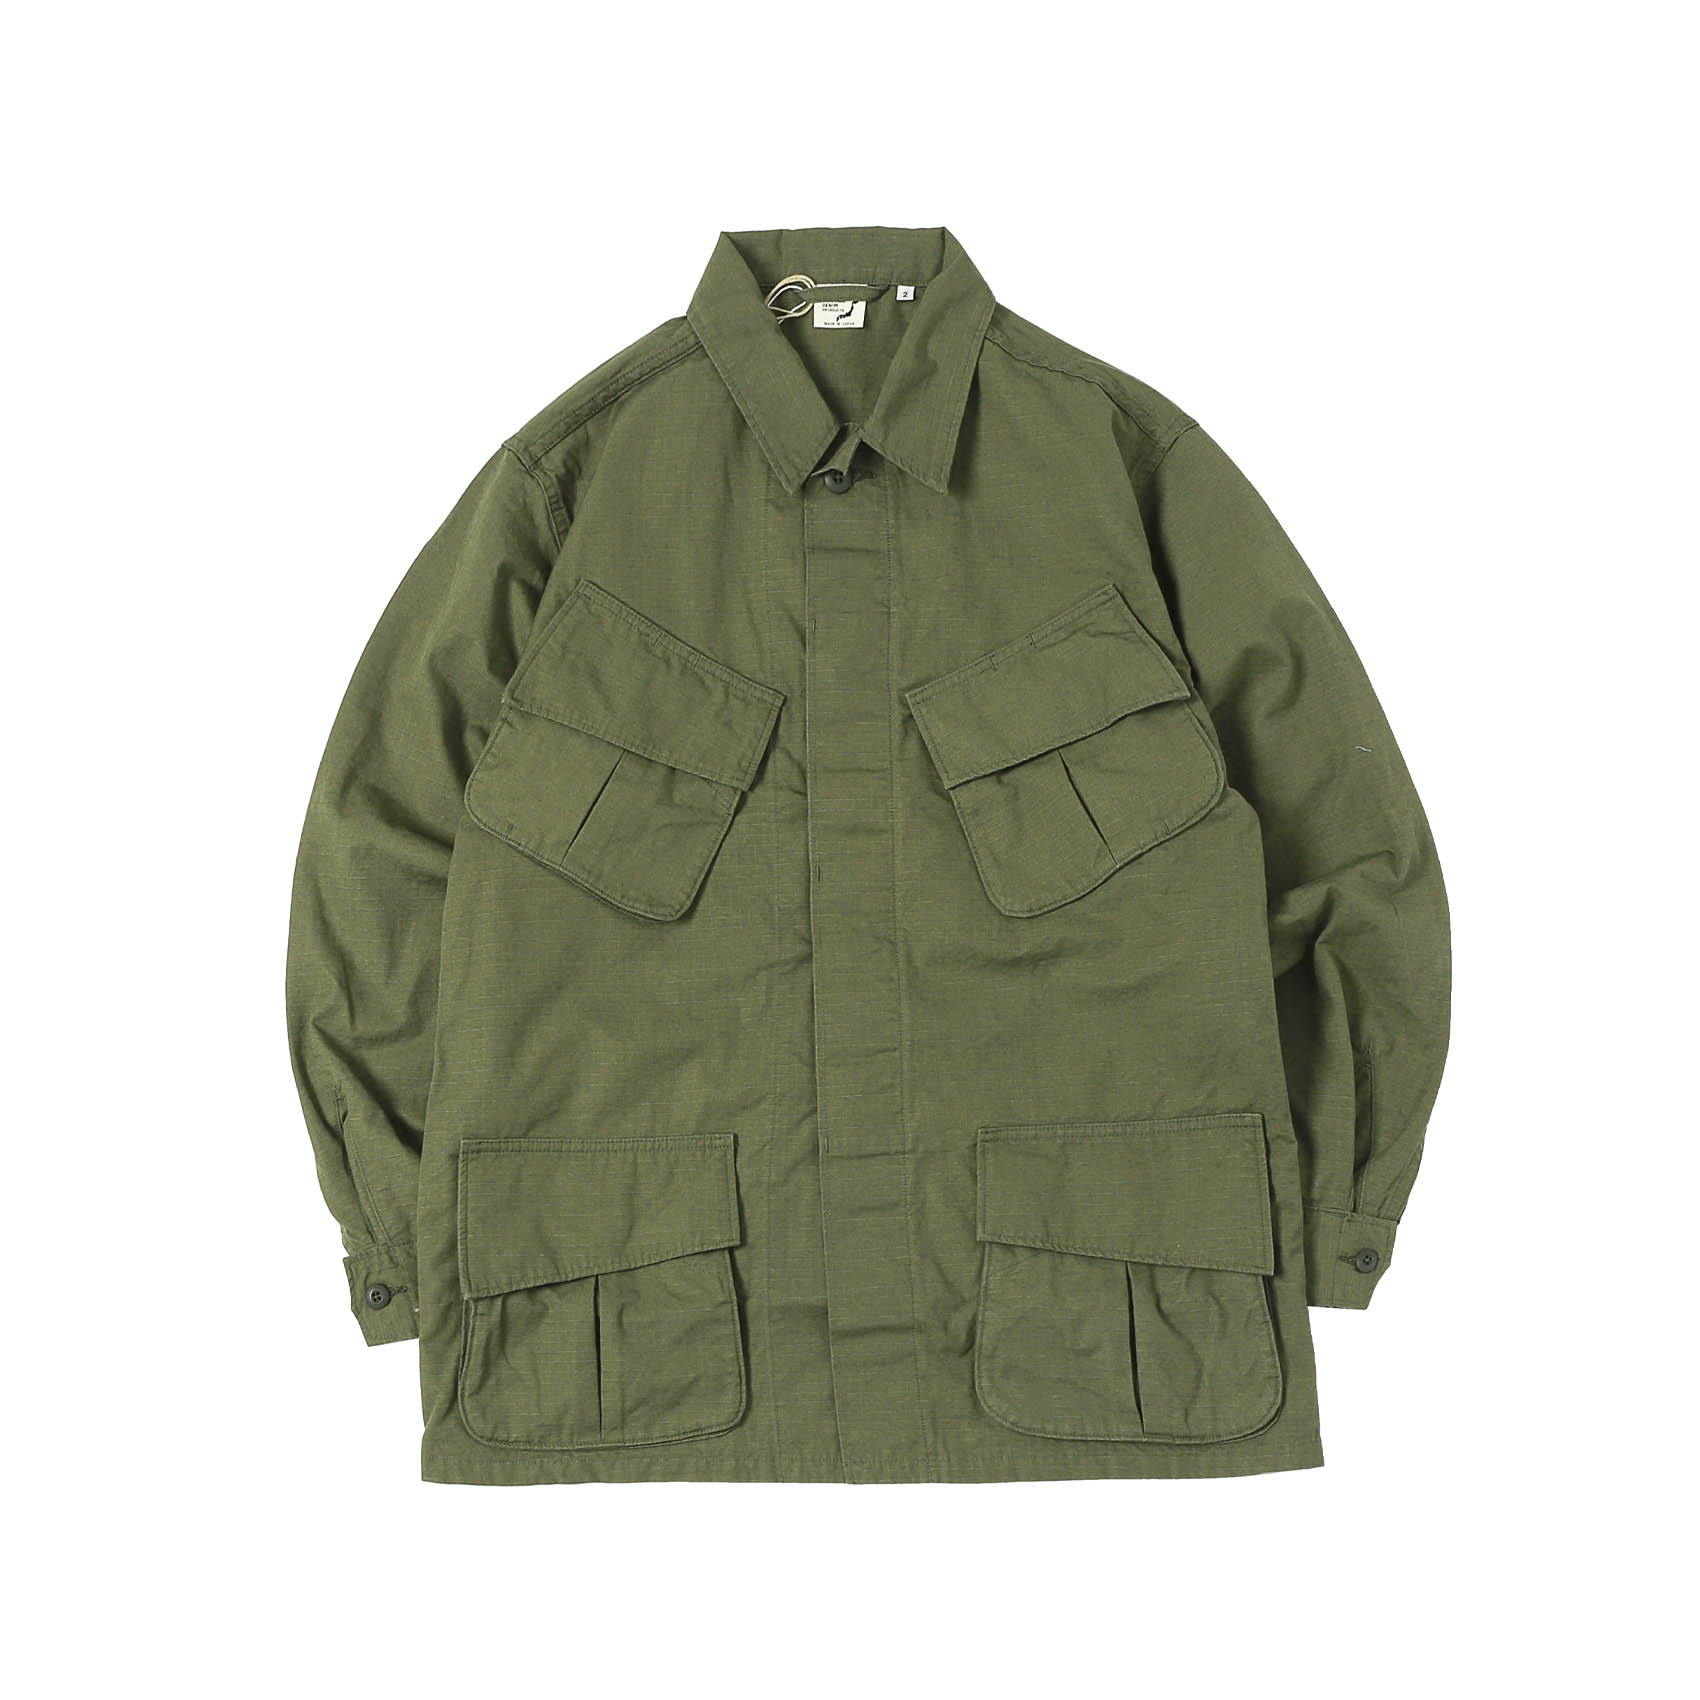 US ARMY JUNGLE FATIGUE JACKET - ARMY GREEN